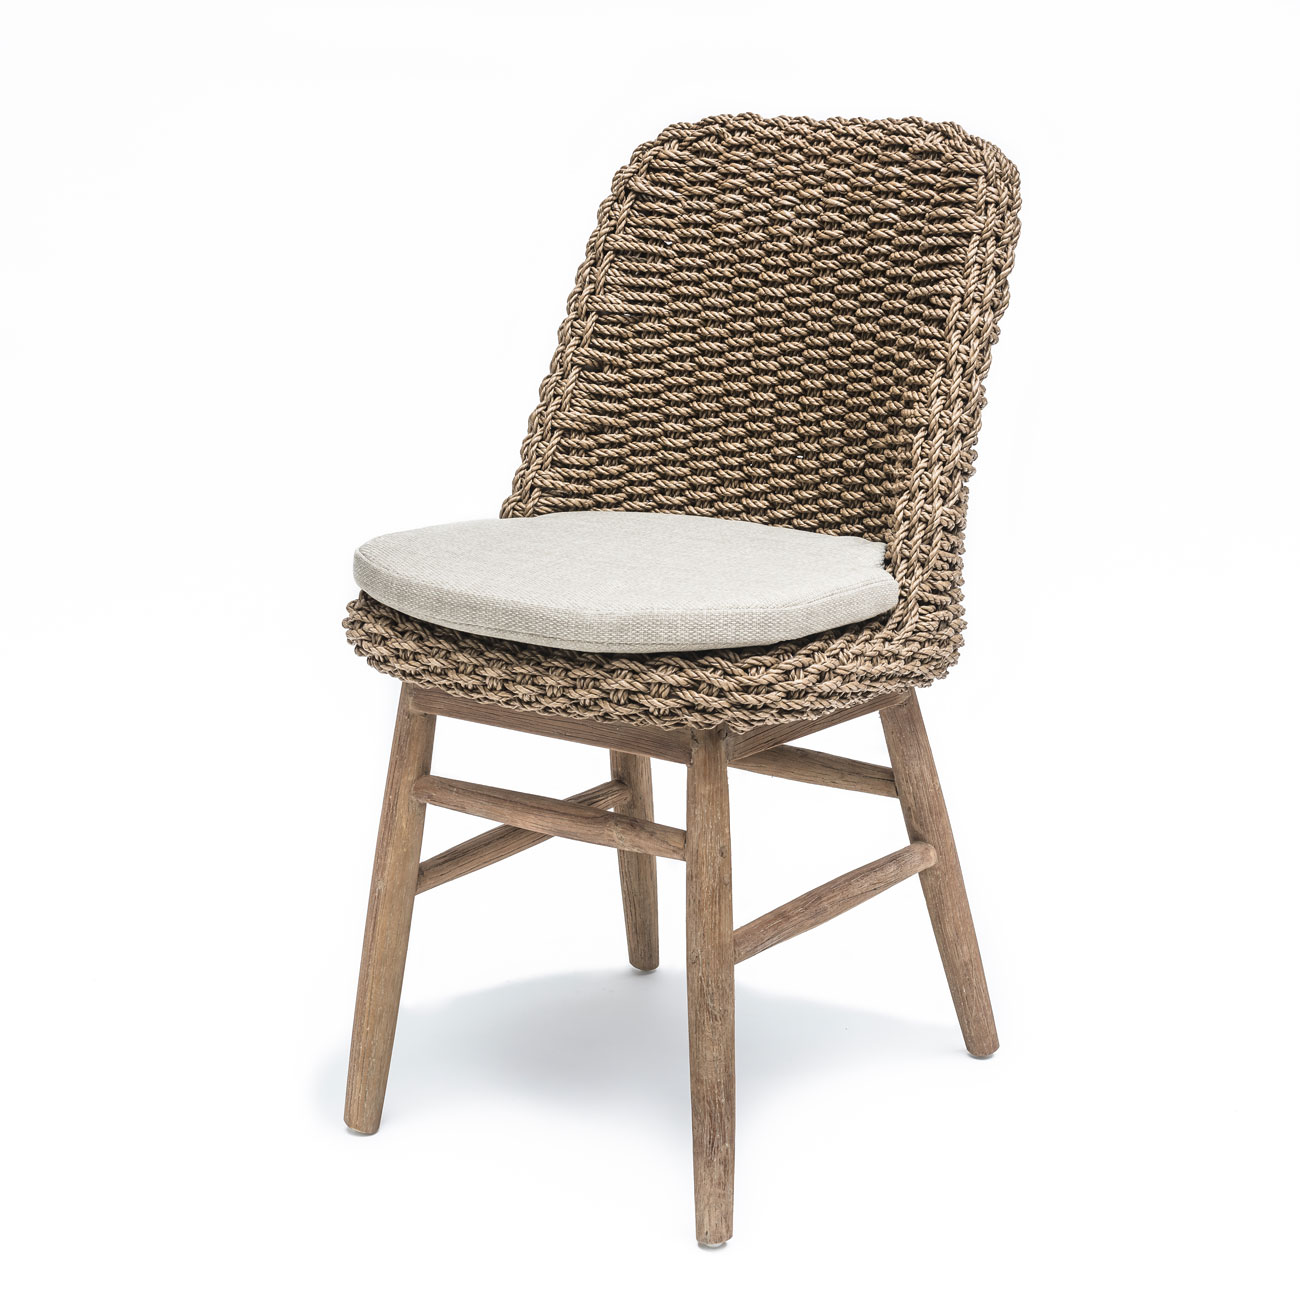 Gommaire Sienna Teak Amp Rattan Dining Chair Luxury